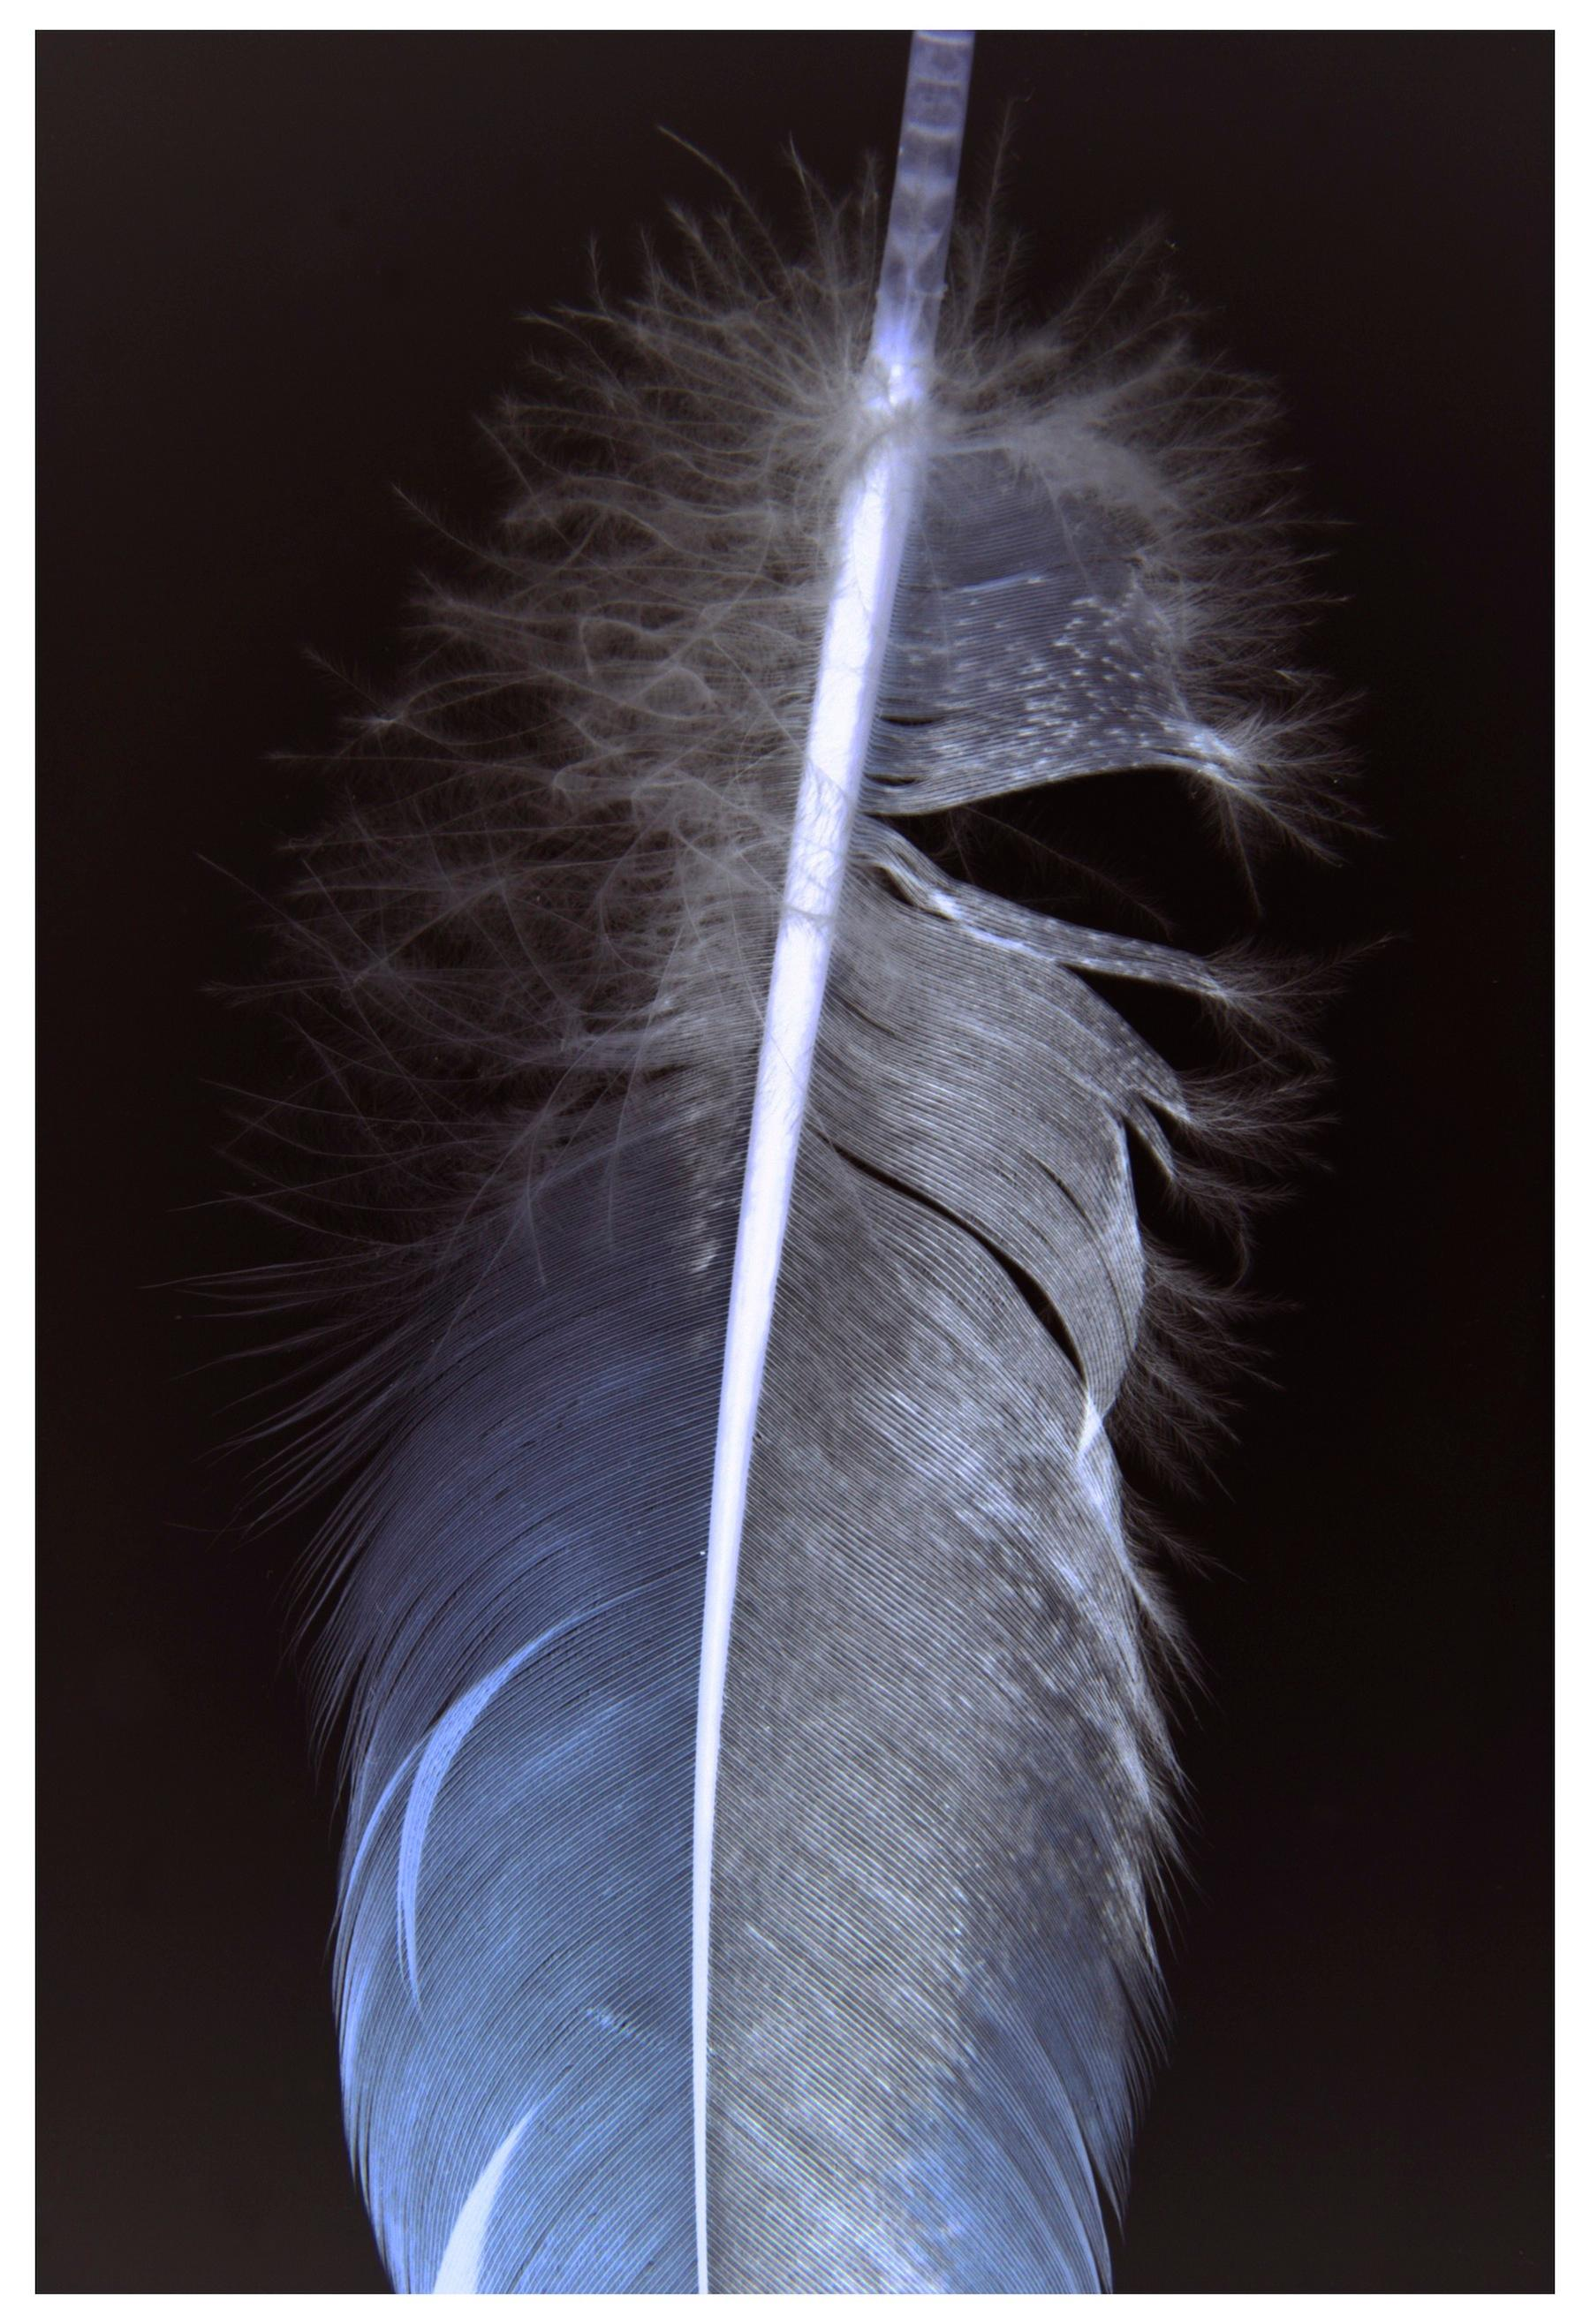 Feathers Three, Vertical Still Life Photograph of White Feather on Black